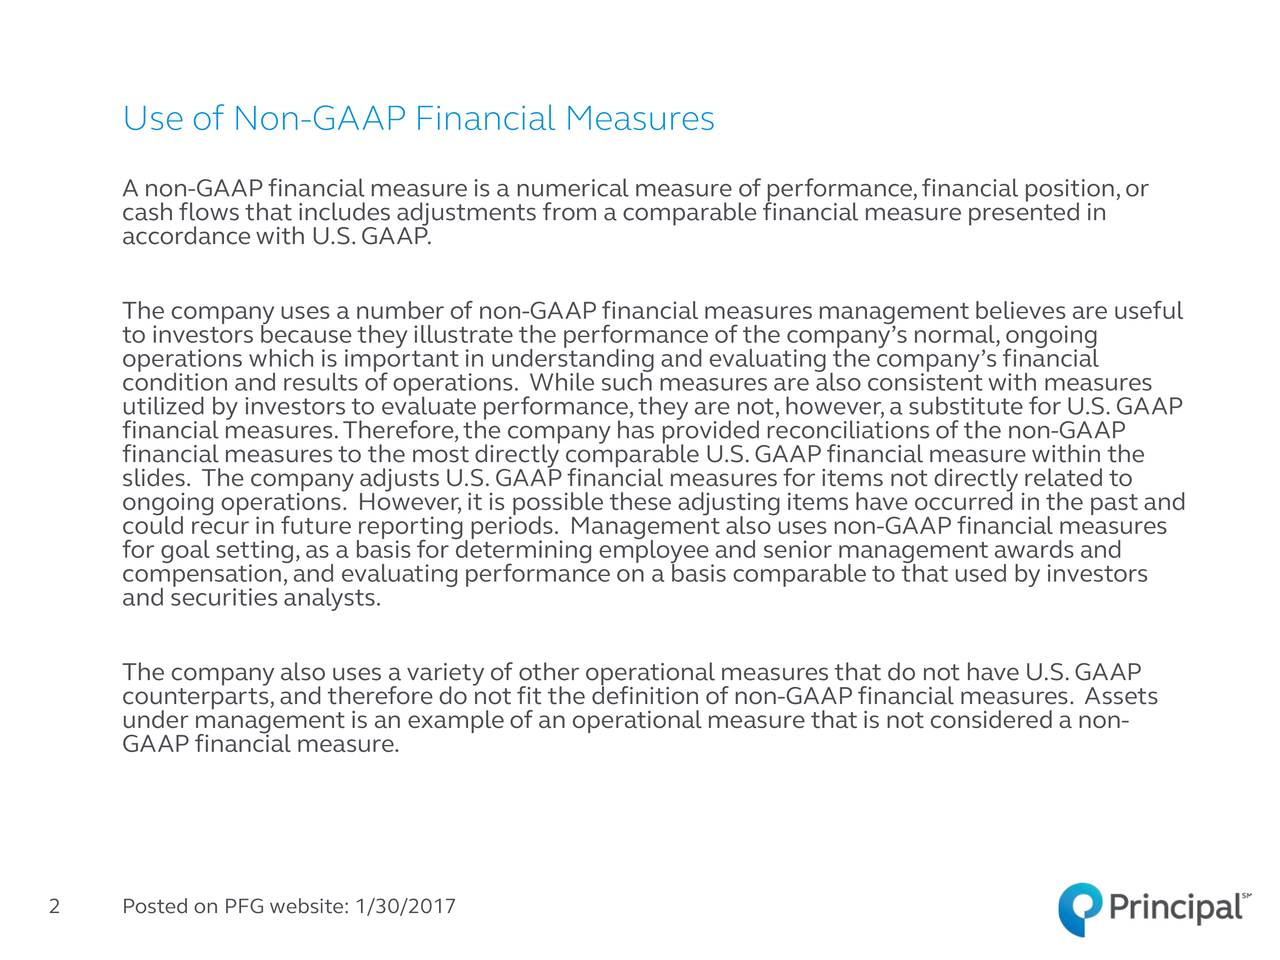 A non-GAAP financial measure is a numerical measure of performance,financial position,or cash flows that includes adjustments from a comparable financial measure presented in accordance with U.S. GAAP. The company uses a number of non-GAAP financial measuresmanagement believes are useful to investors because they illustrate the performance of the companys normal,ongoing condition and results of operations. While such measures are also consistentwith measures utilized by investors to evaluate performance,they are not,however,a substitute for U.S.GAAP financial measures.Therefore,the company has provided reconciliations of the non-GAAP financial measures to the most directly comparable U.S.GAAP financial measure within the slides. The company adjusts U.S.GAAPfinancial measures for items not directly related to ongoing operations. However,it is possible these adjusting items have occurred in the past and could recur in future reporting periods. Management also uses non-GAAP financial measures for goal setting,as a basis for determining employee and senior management awards and compensation,and evaluating performance on a basis comparable to that used by investors and securities analysts. The company also uses a variety of other operational measures that do not have U.S.GAAP counterparts,and therefore do not fit the definition of nGAAPfinancial measures. Assets under management is an example of an operational measure that is not considered a non- GAAP financial measure. 2 Posted on PFG website: 1/30/2017